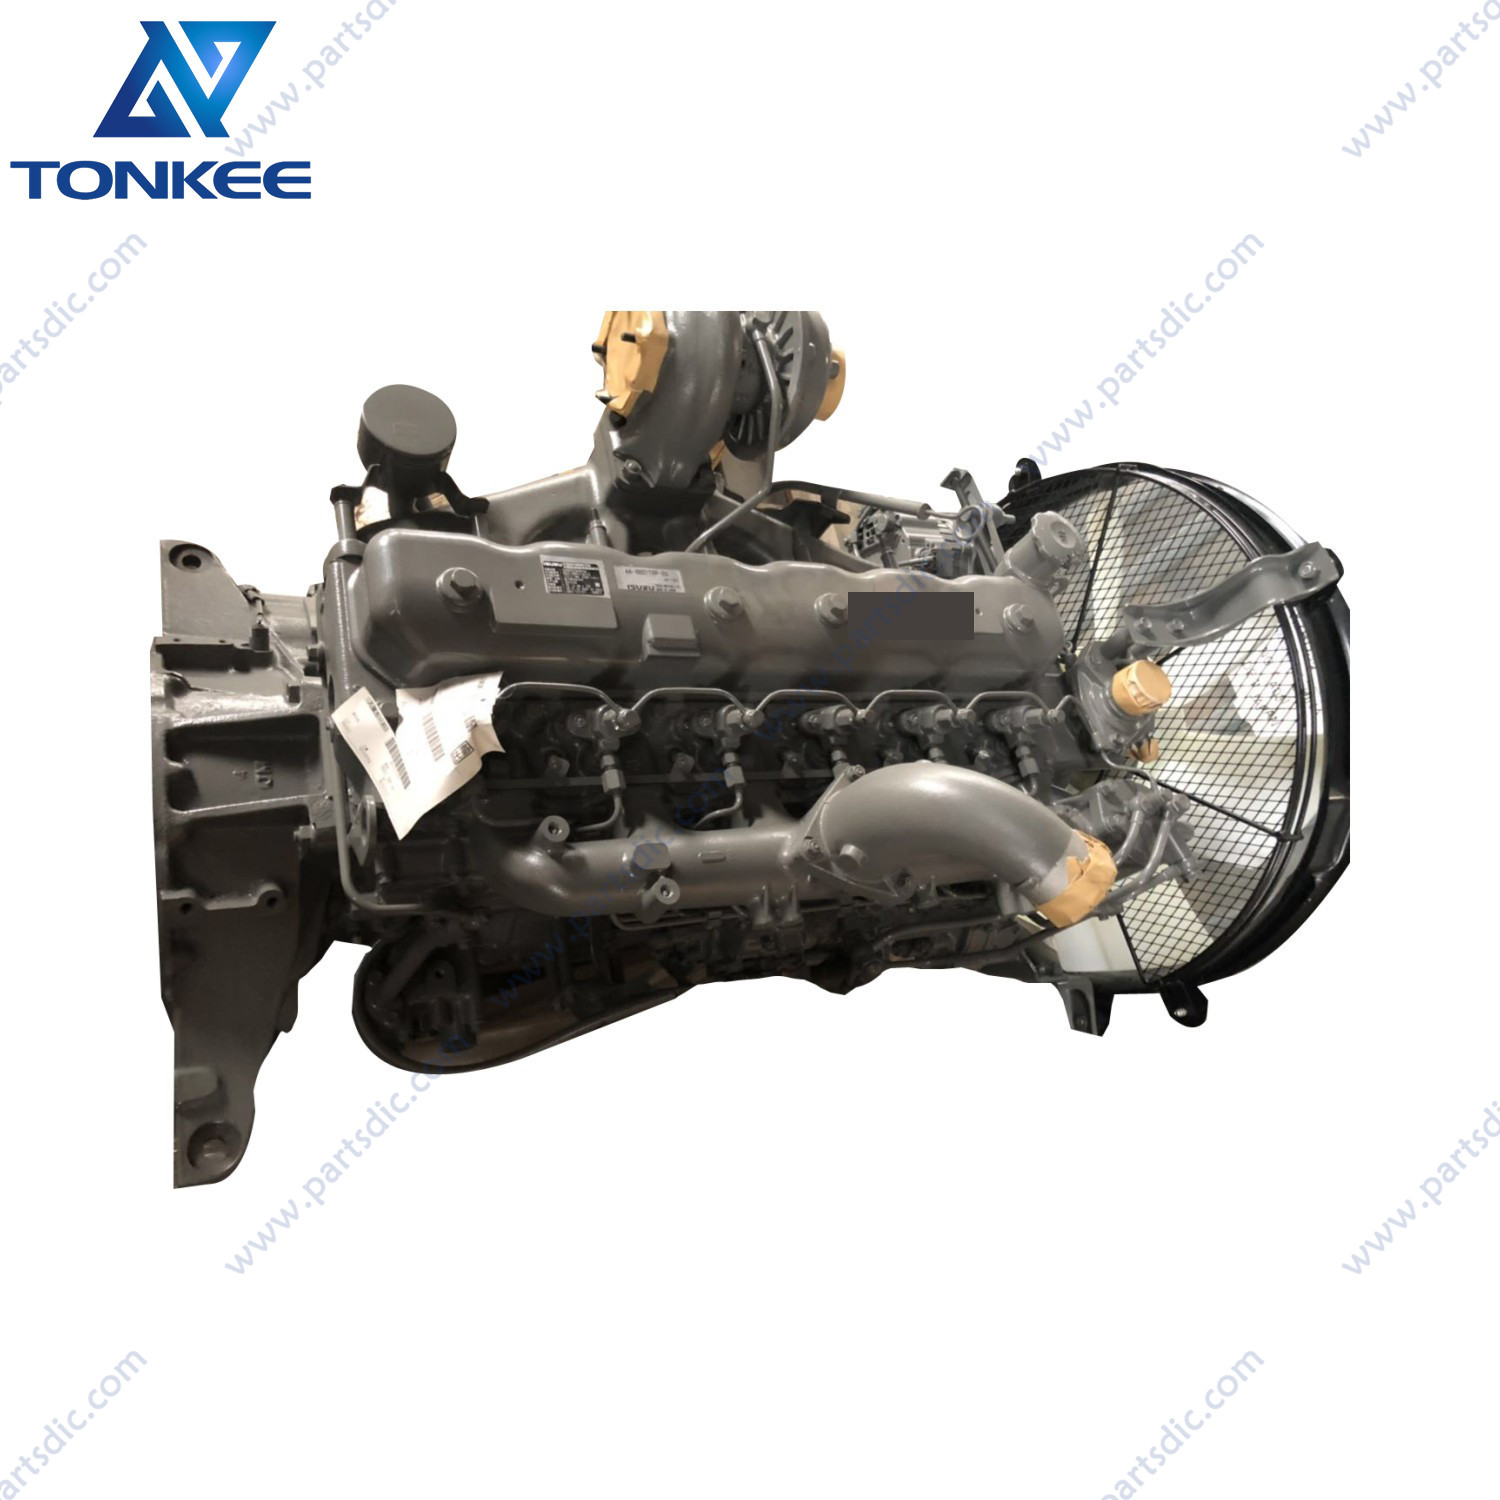 construction machinery parts 4489383 6BD1 AA-6BG1 TRA EX200-2 EX200-3 EX200-5 ZX200LC ZX200-3G excavator diesel engine assembly